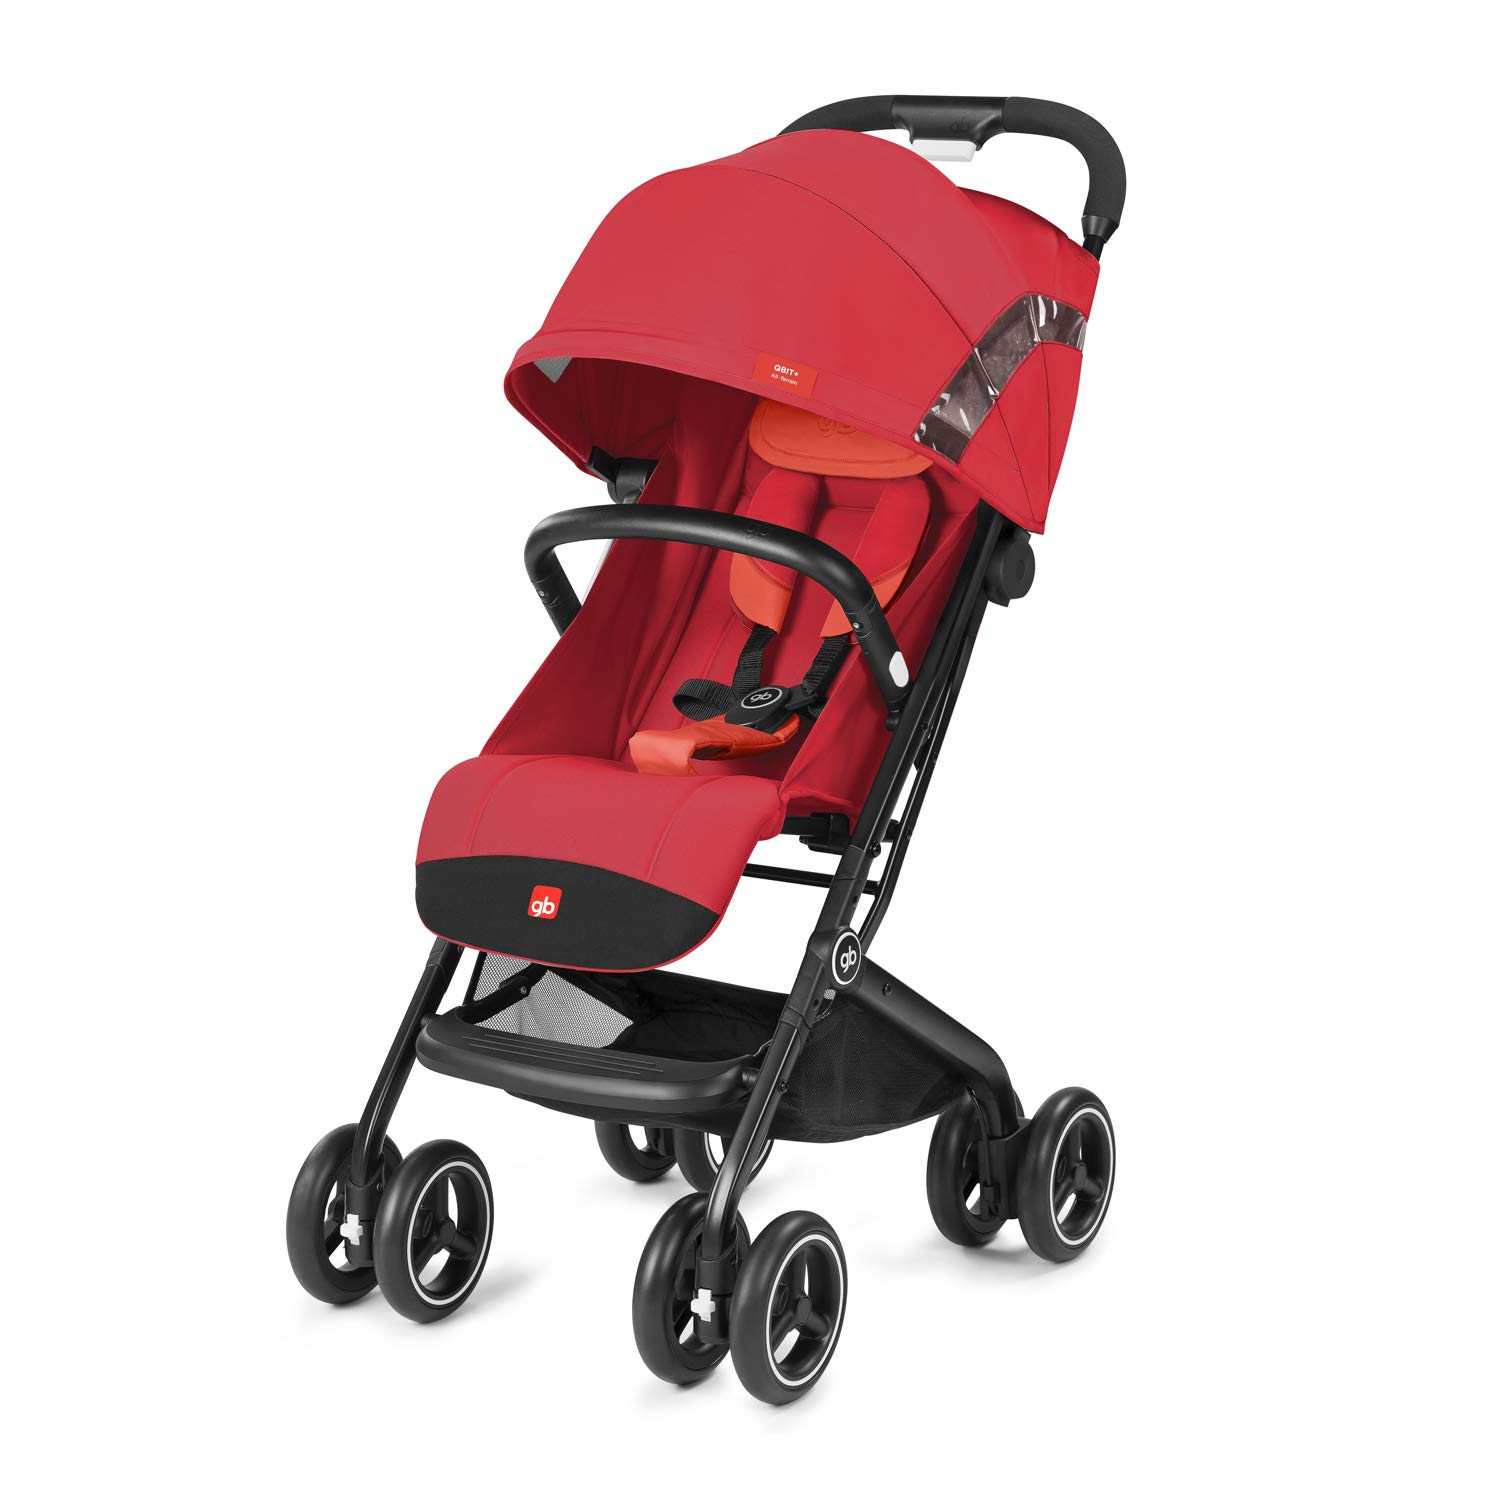 gb 2019 Buggy QBIT+ All-Terrain with Bumper Bar''Rose Red''- from Birth up to 17 kg (Approx. 4 Years) - GoodBaby QBIT Plus